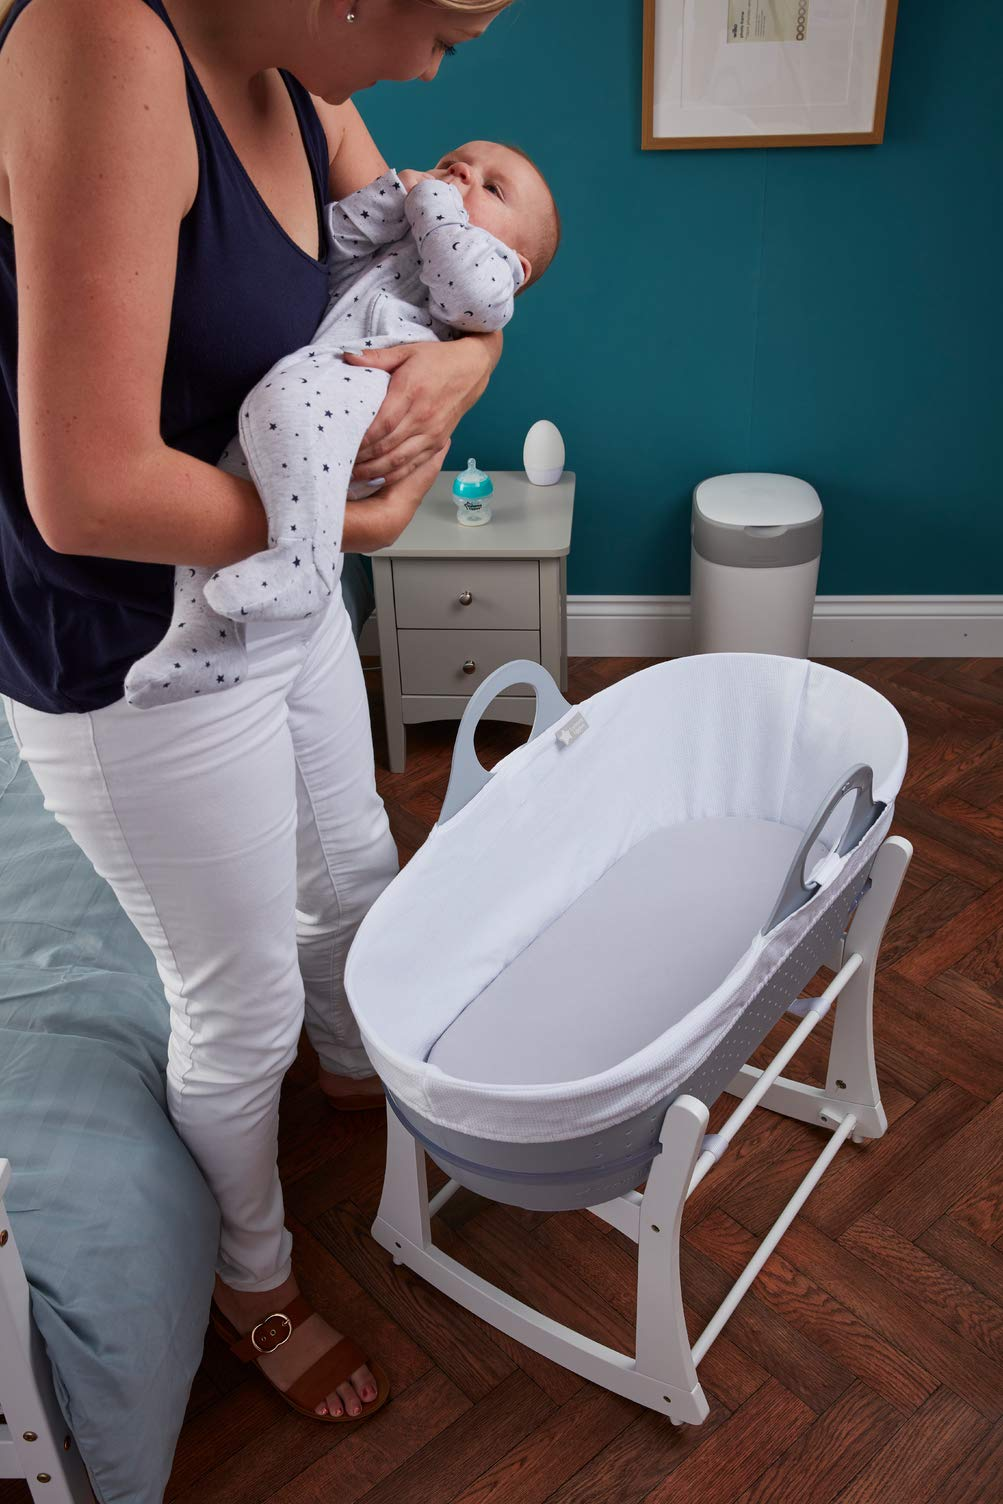 Tommee Tippee Sleepee Baby Moses Basket Grey Tommee Tippee Safe, modern, portable baby moses basket, perfect to keep your newborn baby nearby as they sleep, day or night. your sleepee moses basket comes complete with mattress and liner Easy to clean, the sleepee moses basket can be cleaned with warm soapy water. the water-resistant mattress cover is wipe clean and machine washable. the 100 % cotton liner is machine washable. Supported by safe sleep experts the lullaby trust, the sleepee moses basket has over 300 airholes along the side and base allowing max airflow to help regulate baby temperature and allow breathability 6